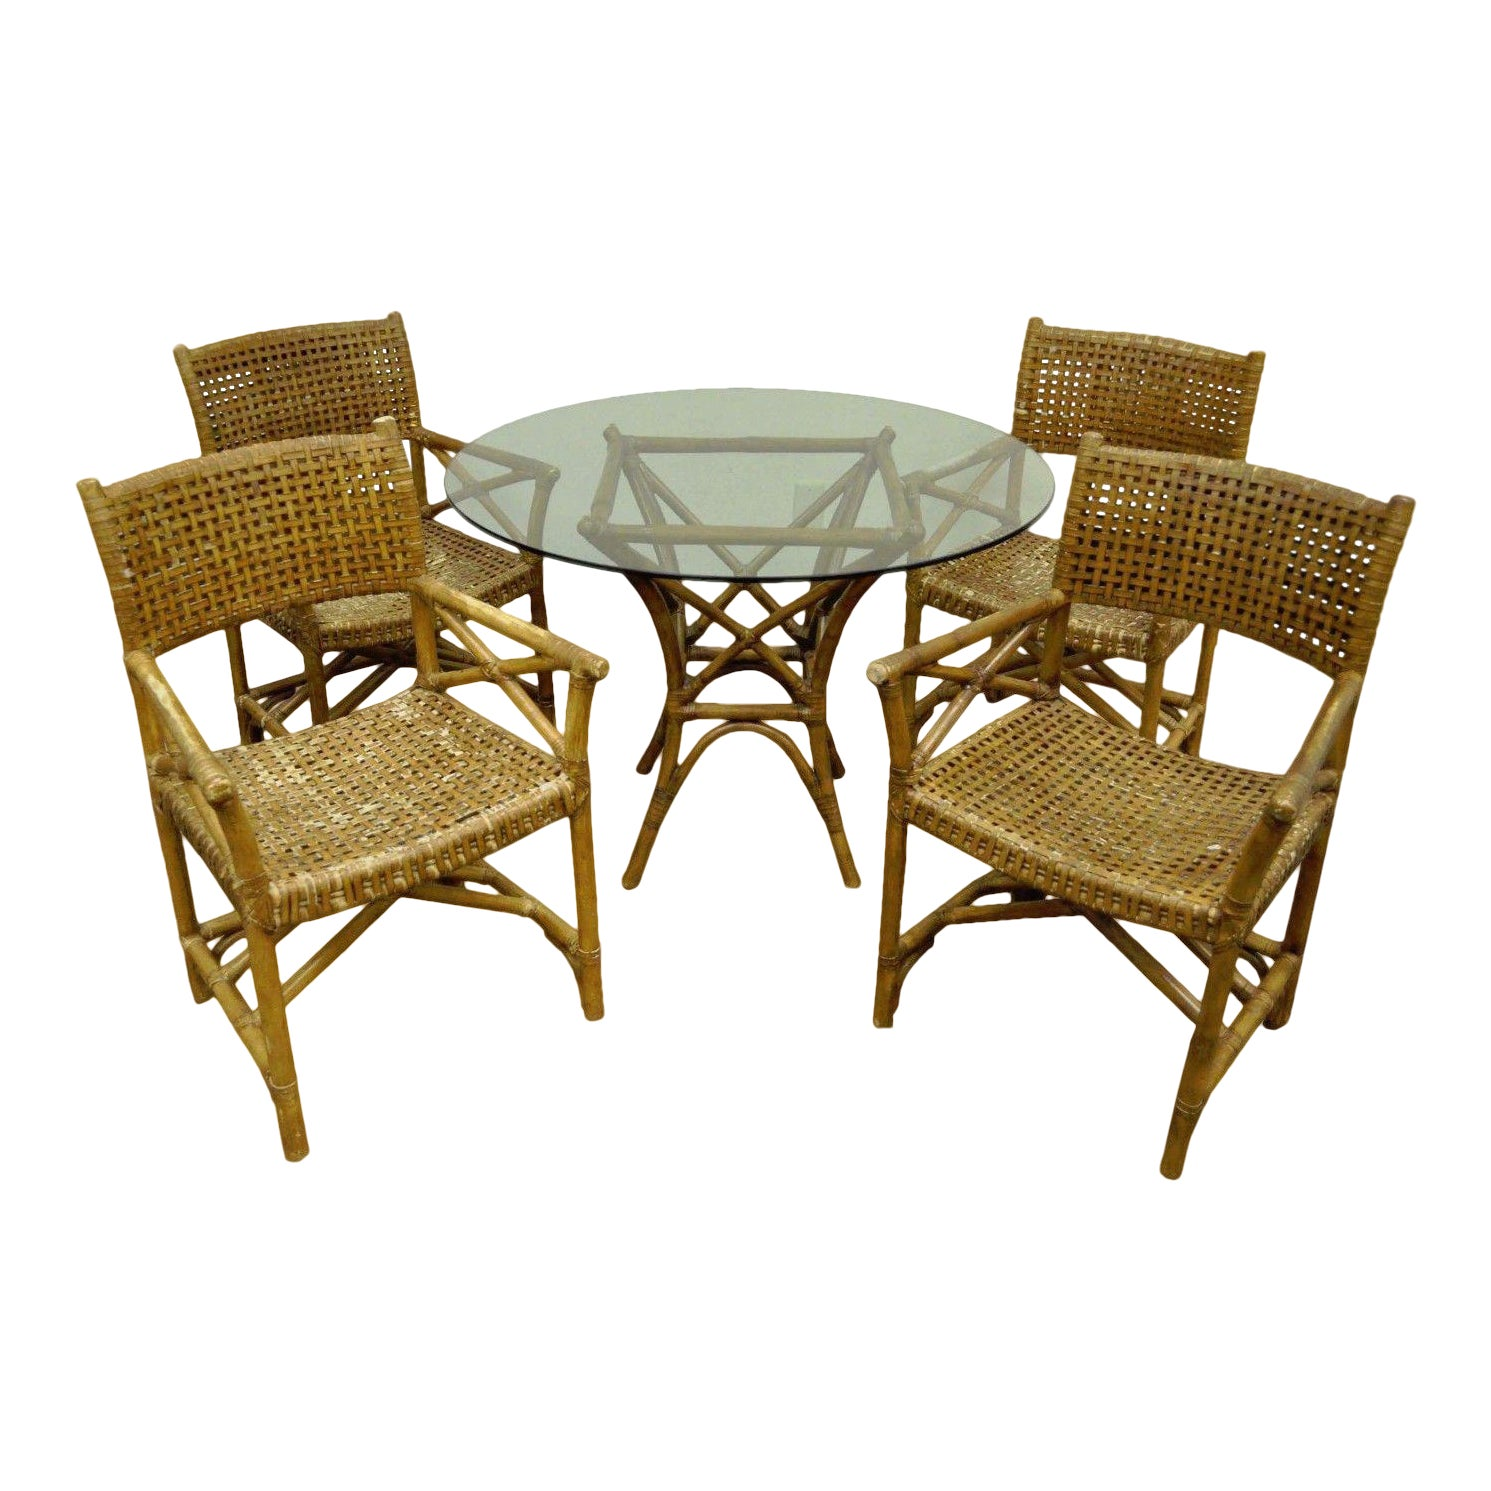 Faux Bamboo Rattan Sunroom Dining Patio Set Table 4 Chairs McGuire Antalya  Style | Chairish - Faux Bamboo Rattan Sunroom Dining Patio Set Table 4 Chairs McGuire